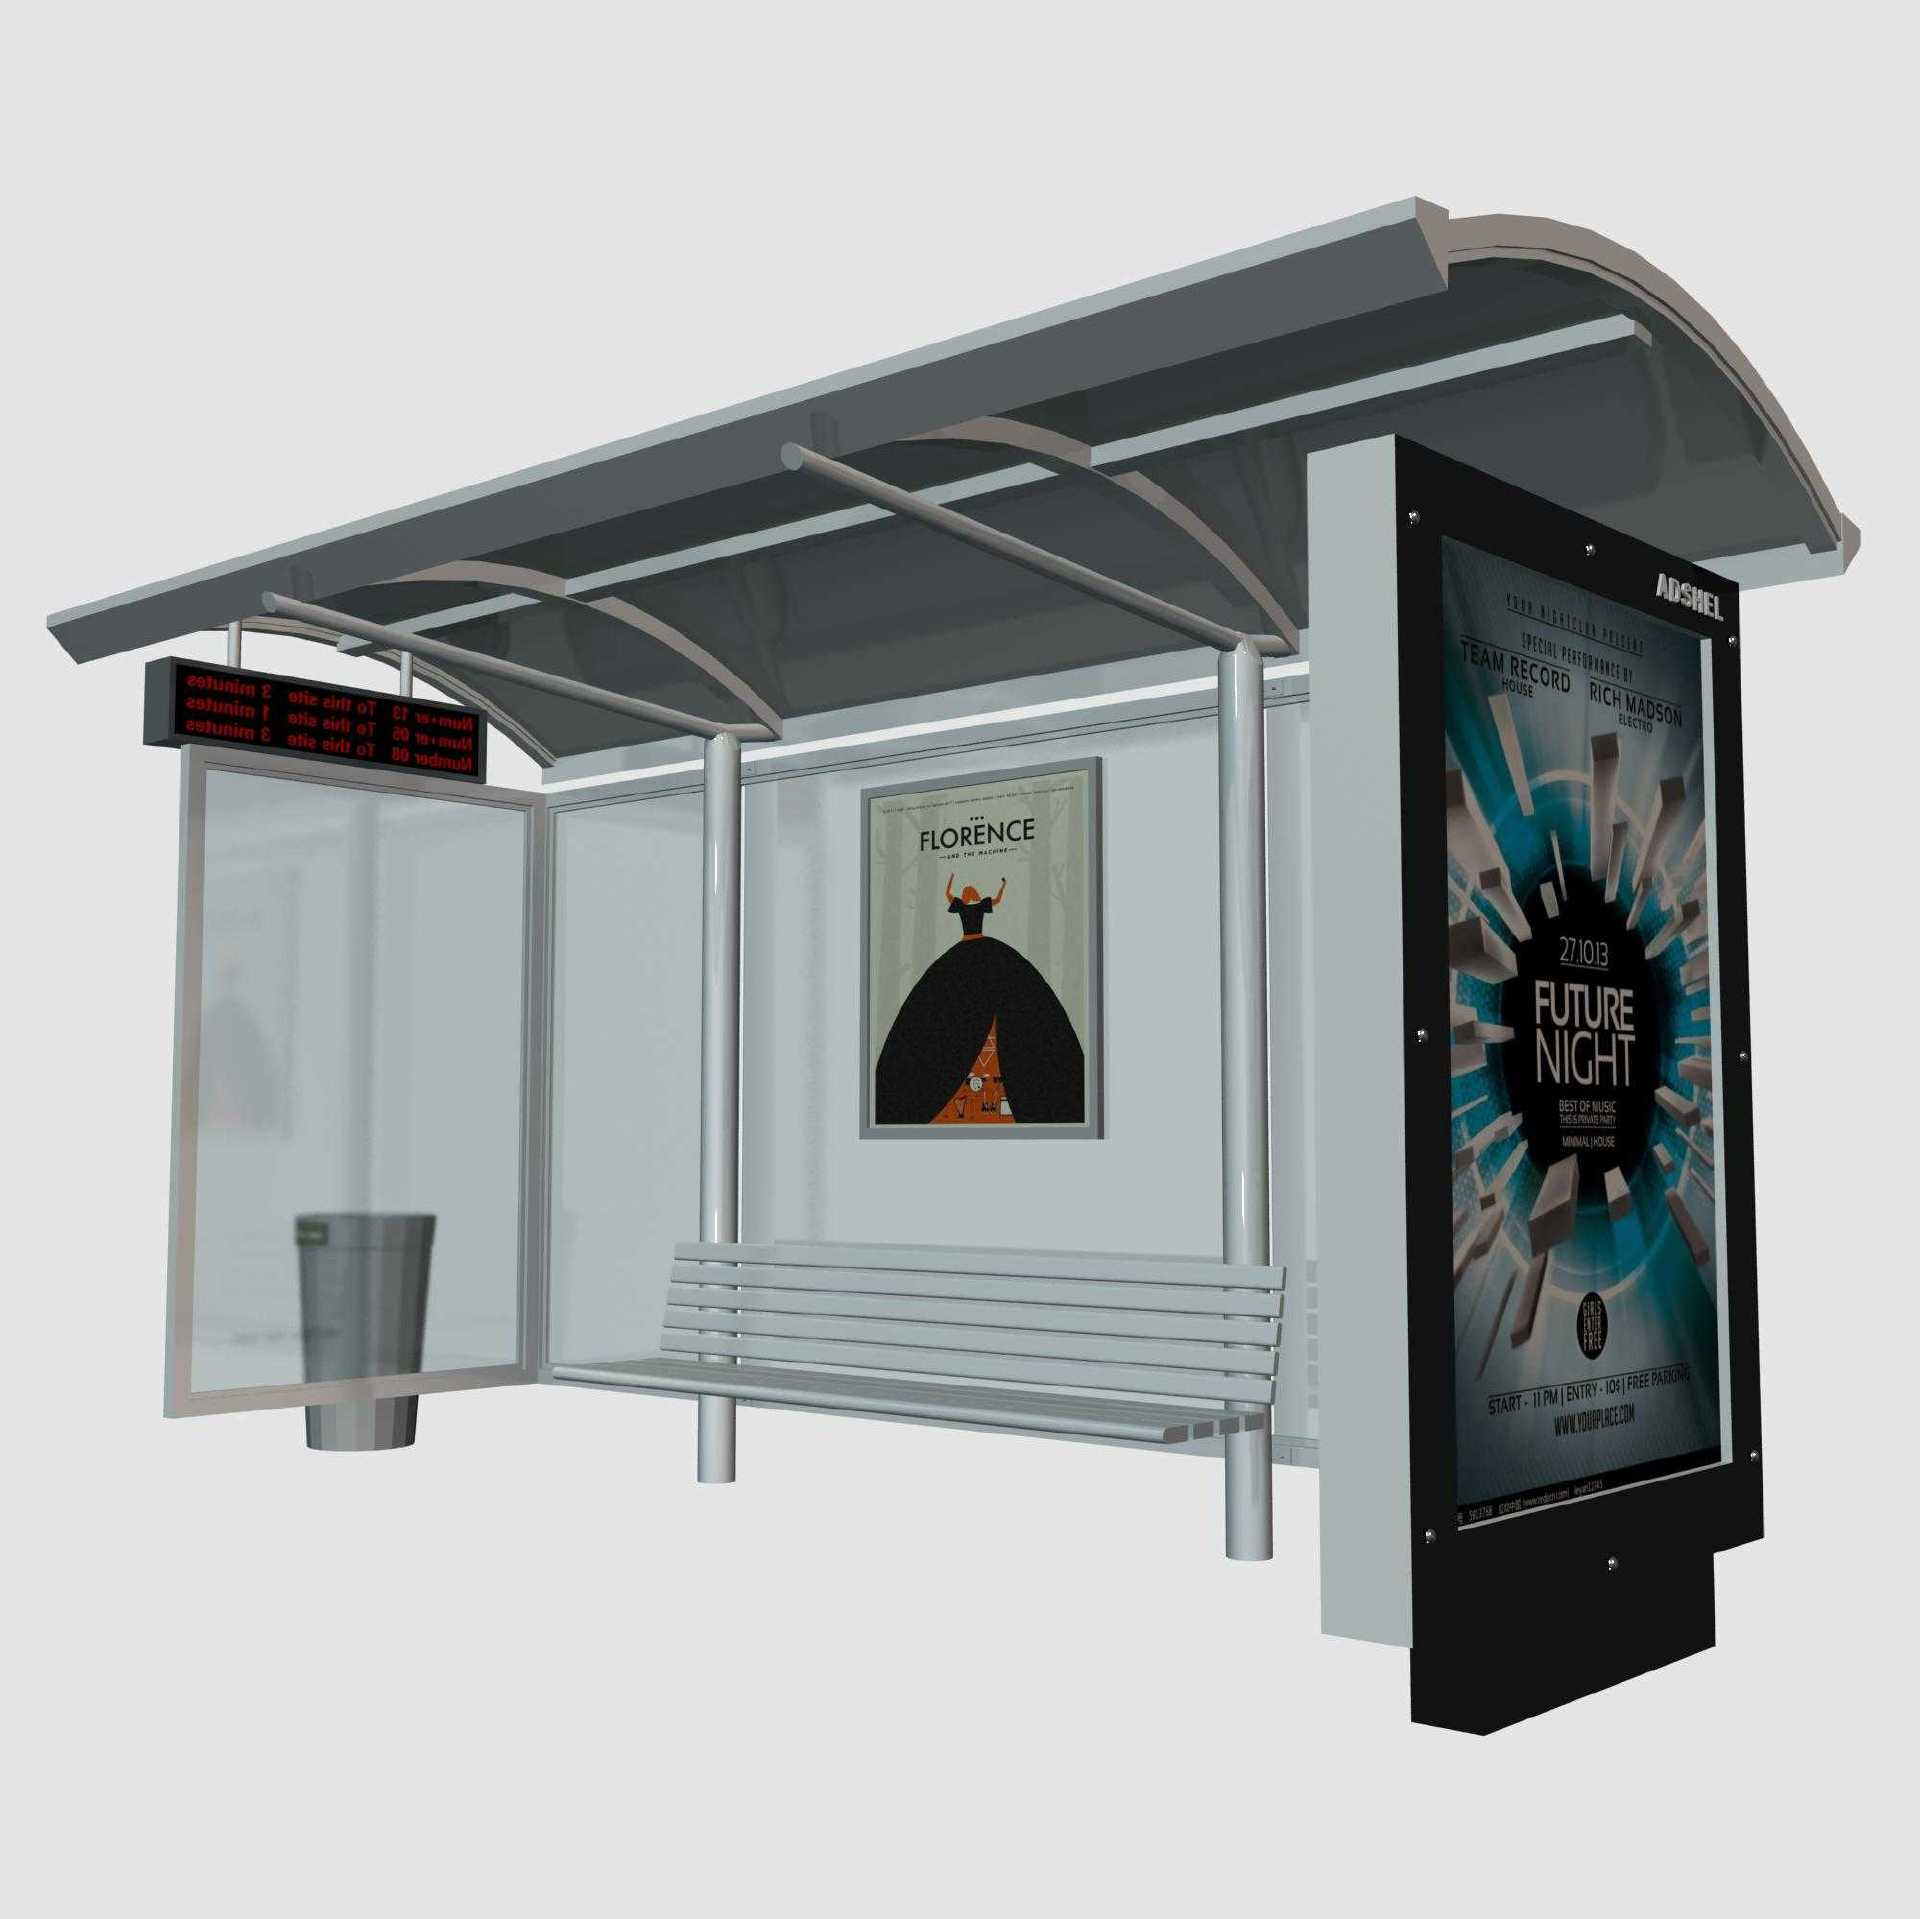 Advertising customized bus stop shelter Roof Bench bus shelt